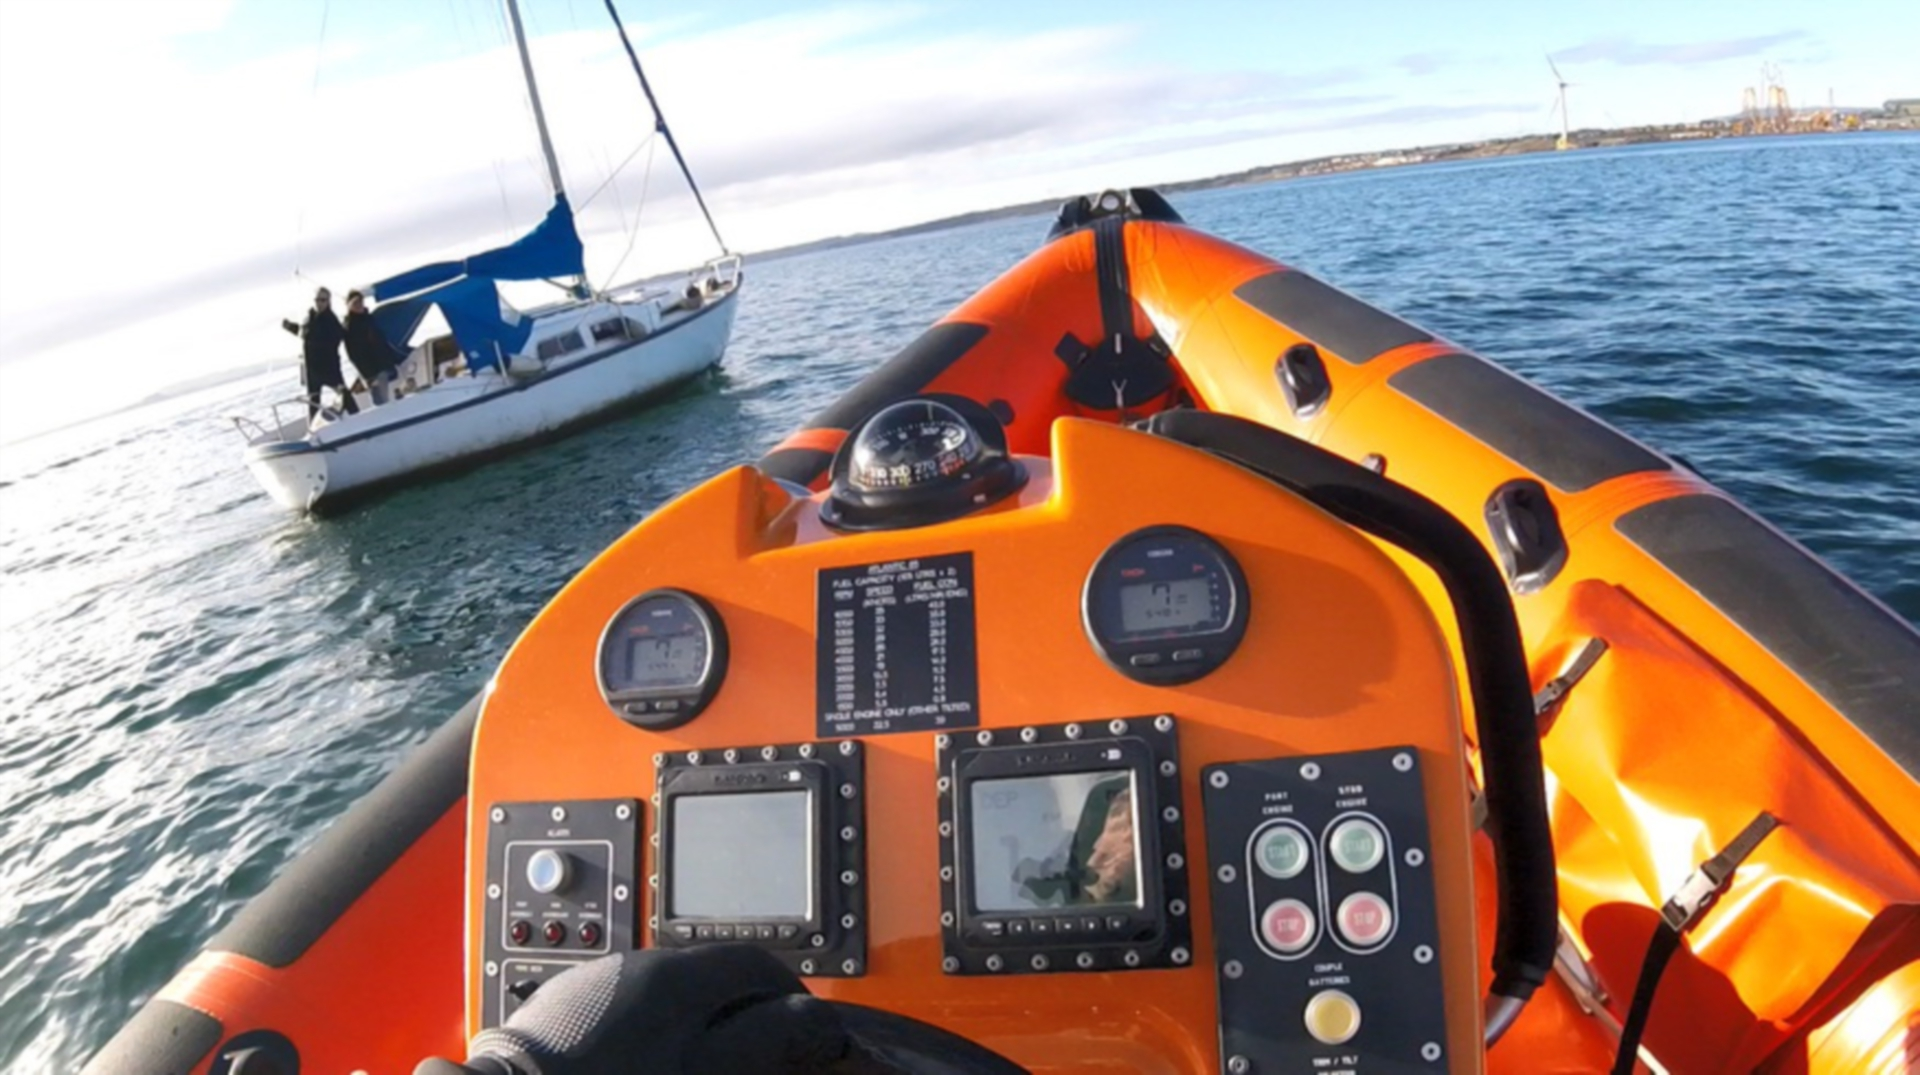 The crew pull alongside with the sailing vessel transmitting the distress signal.